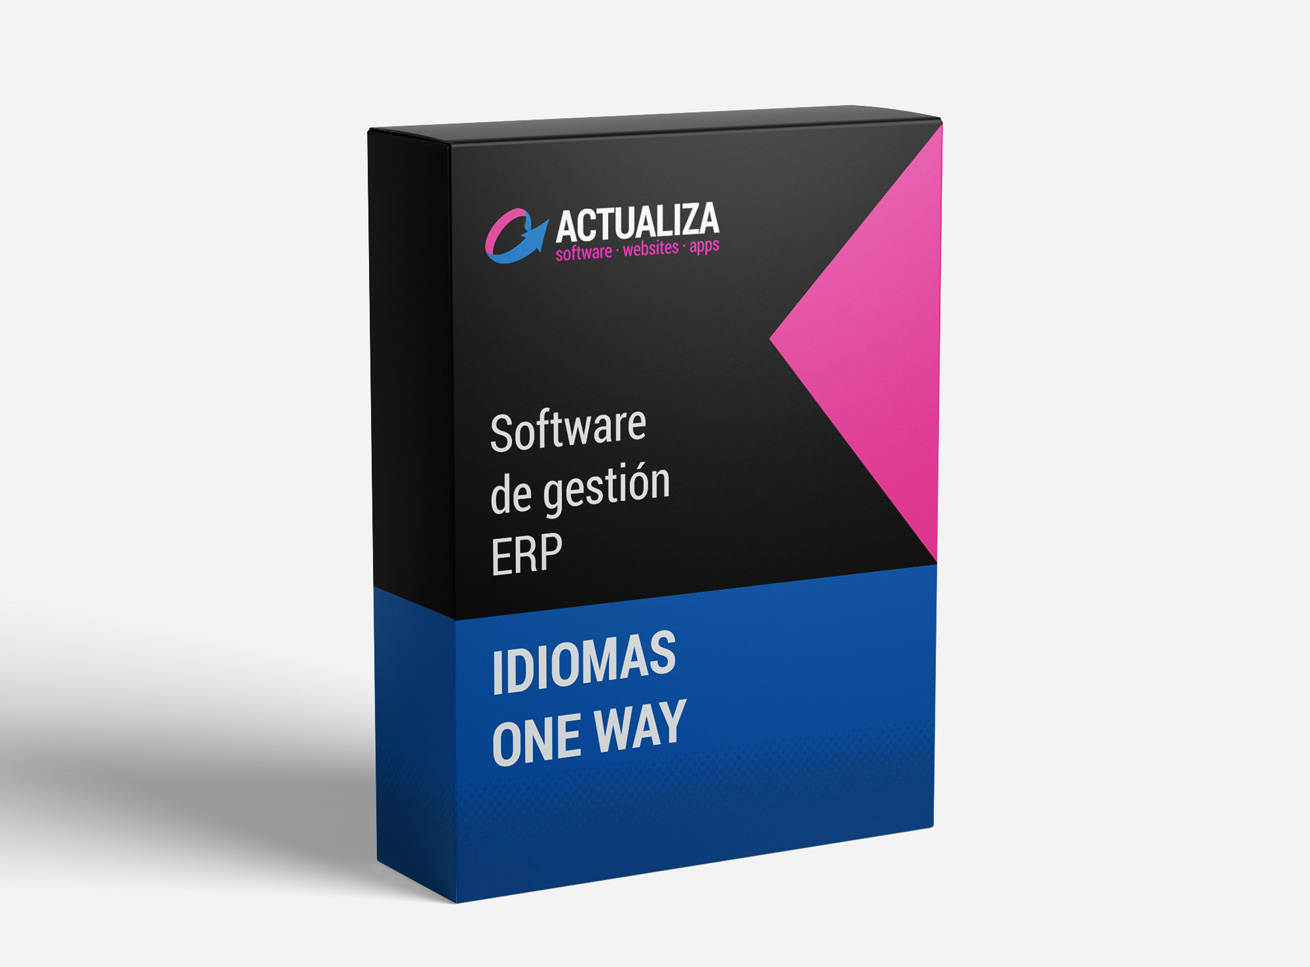 Idiomas One Way Software de gestión ERP